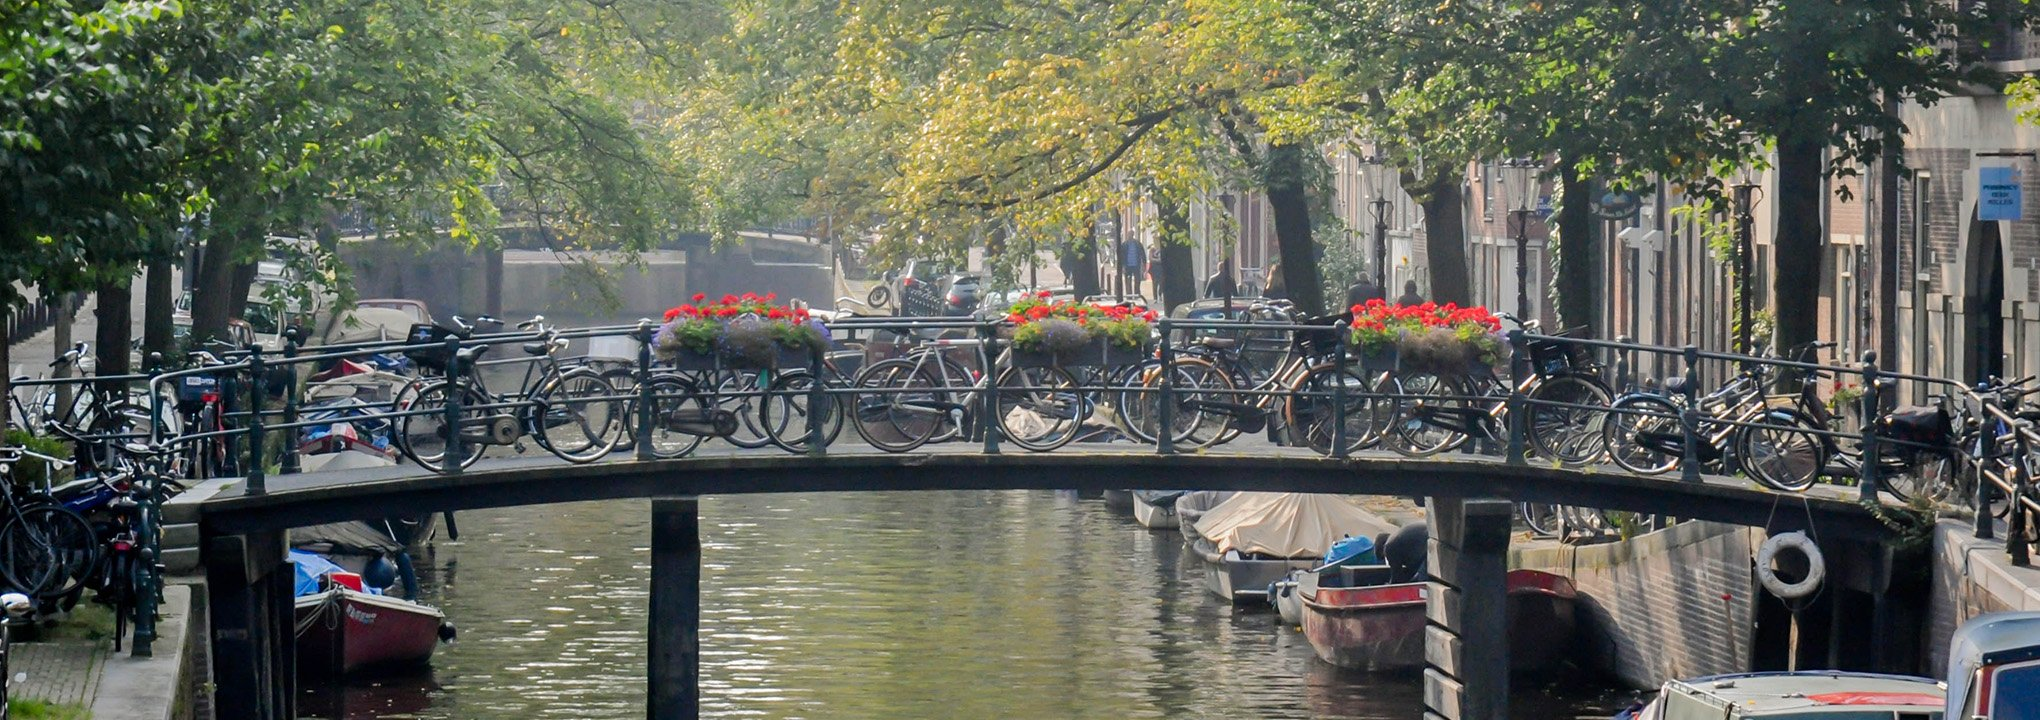 Visit Amsterdam city center